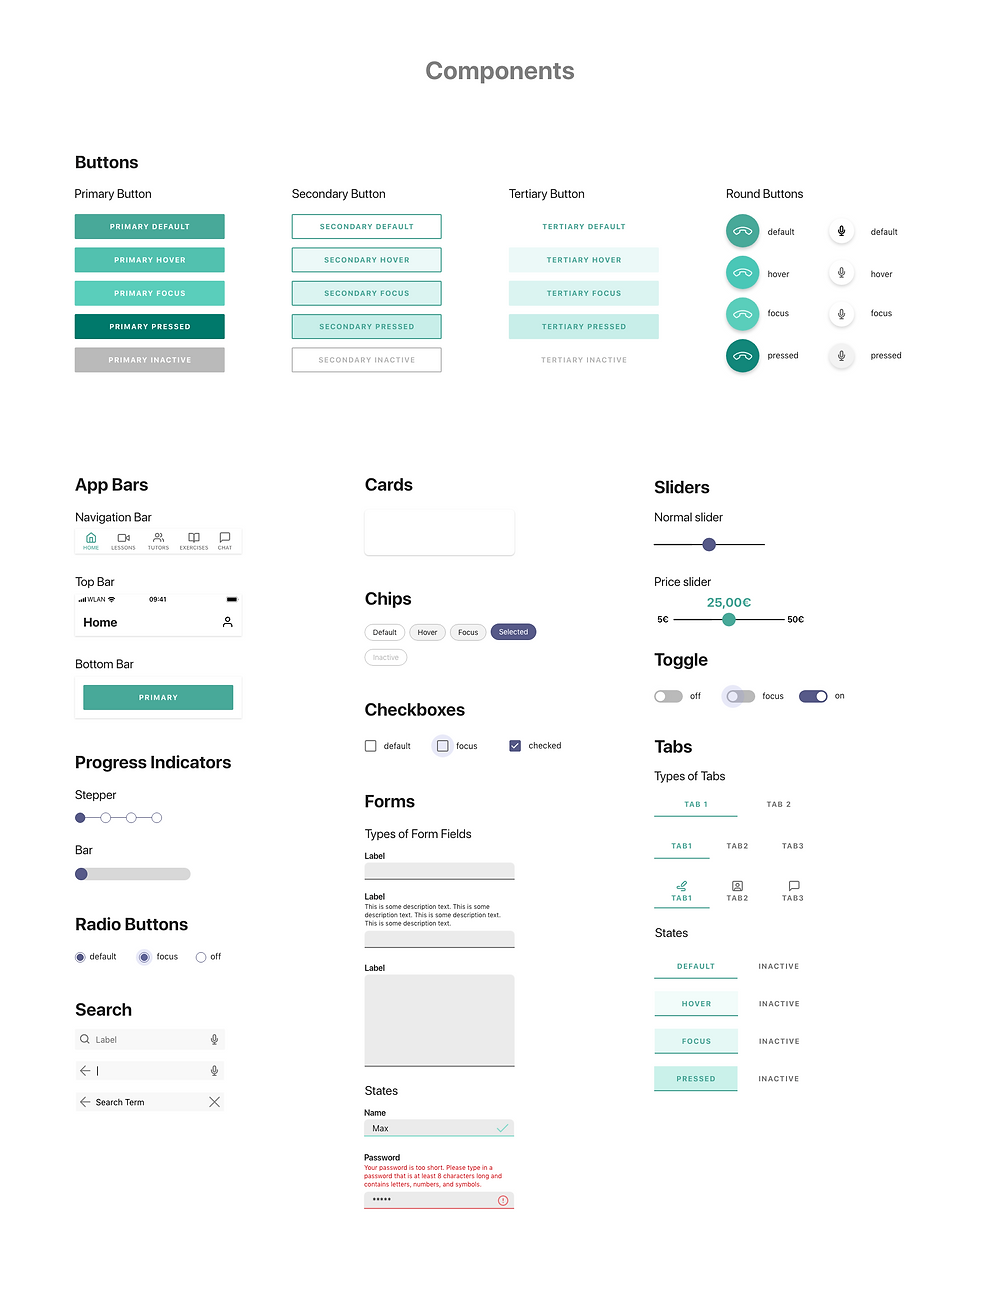 All components of the app, from navigation bars to text input fields.